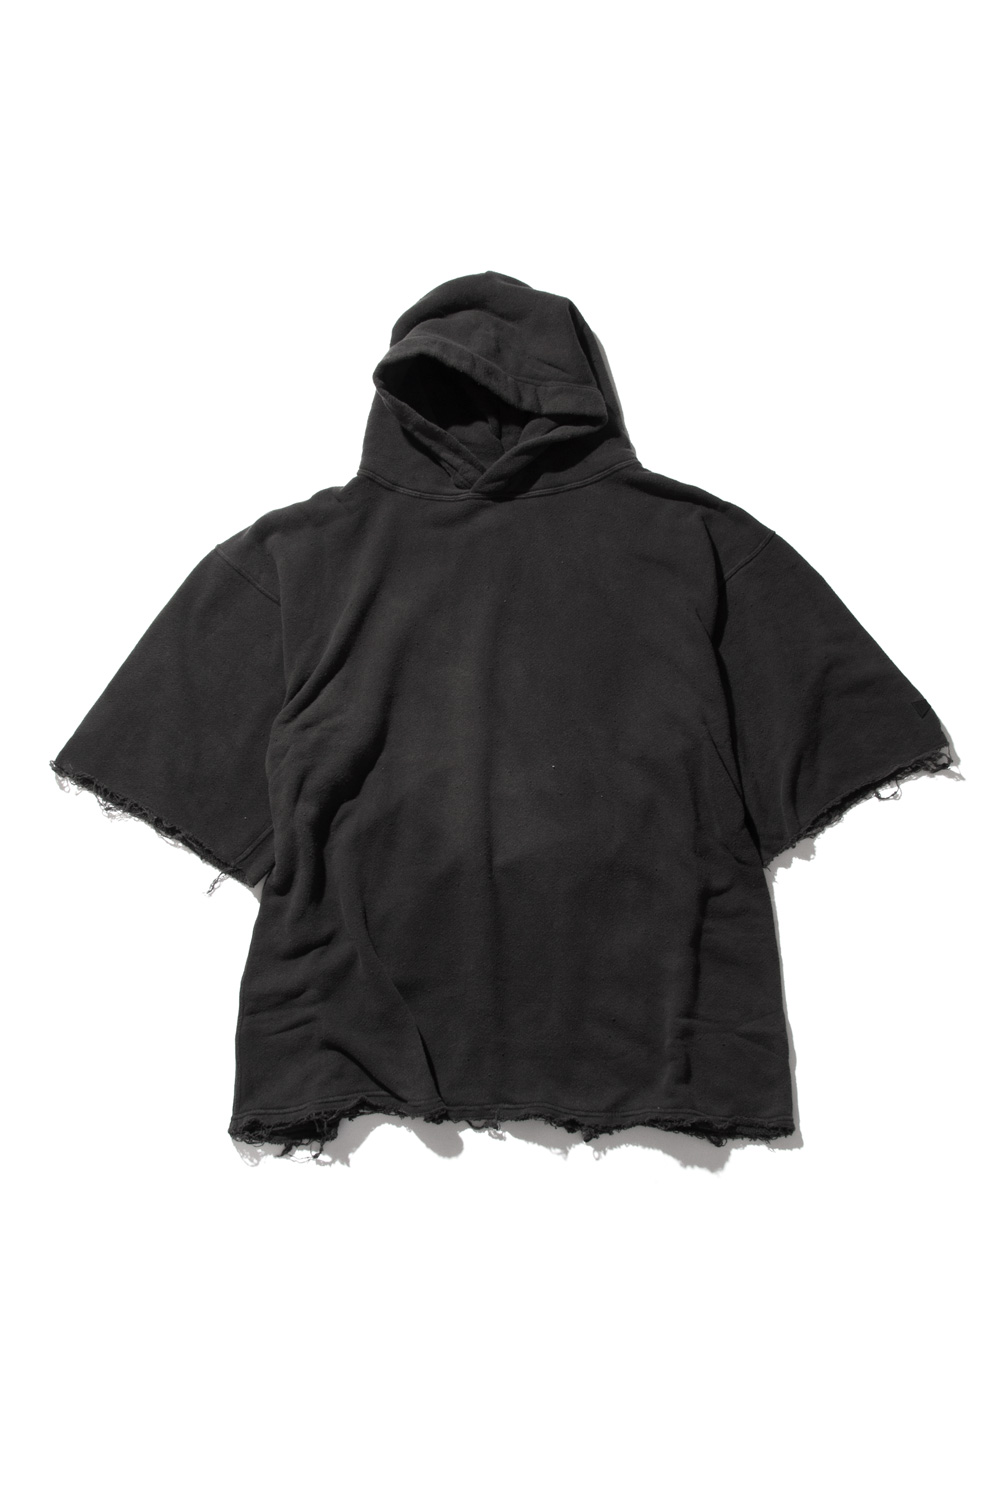 画像1: 【VOTE MAKE NEW CLOTHES】 WIDE SLEEVE HARF HOODIE